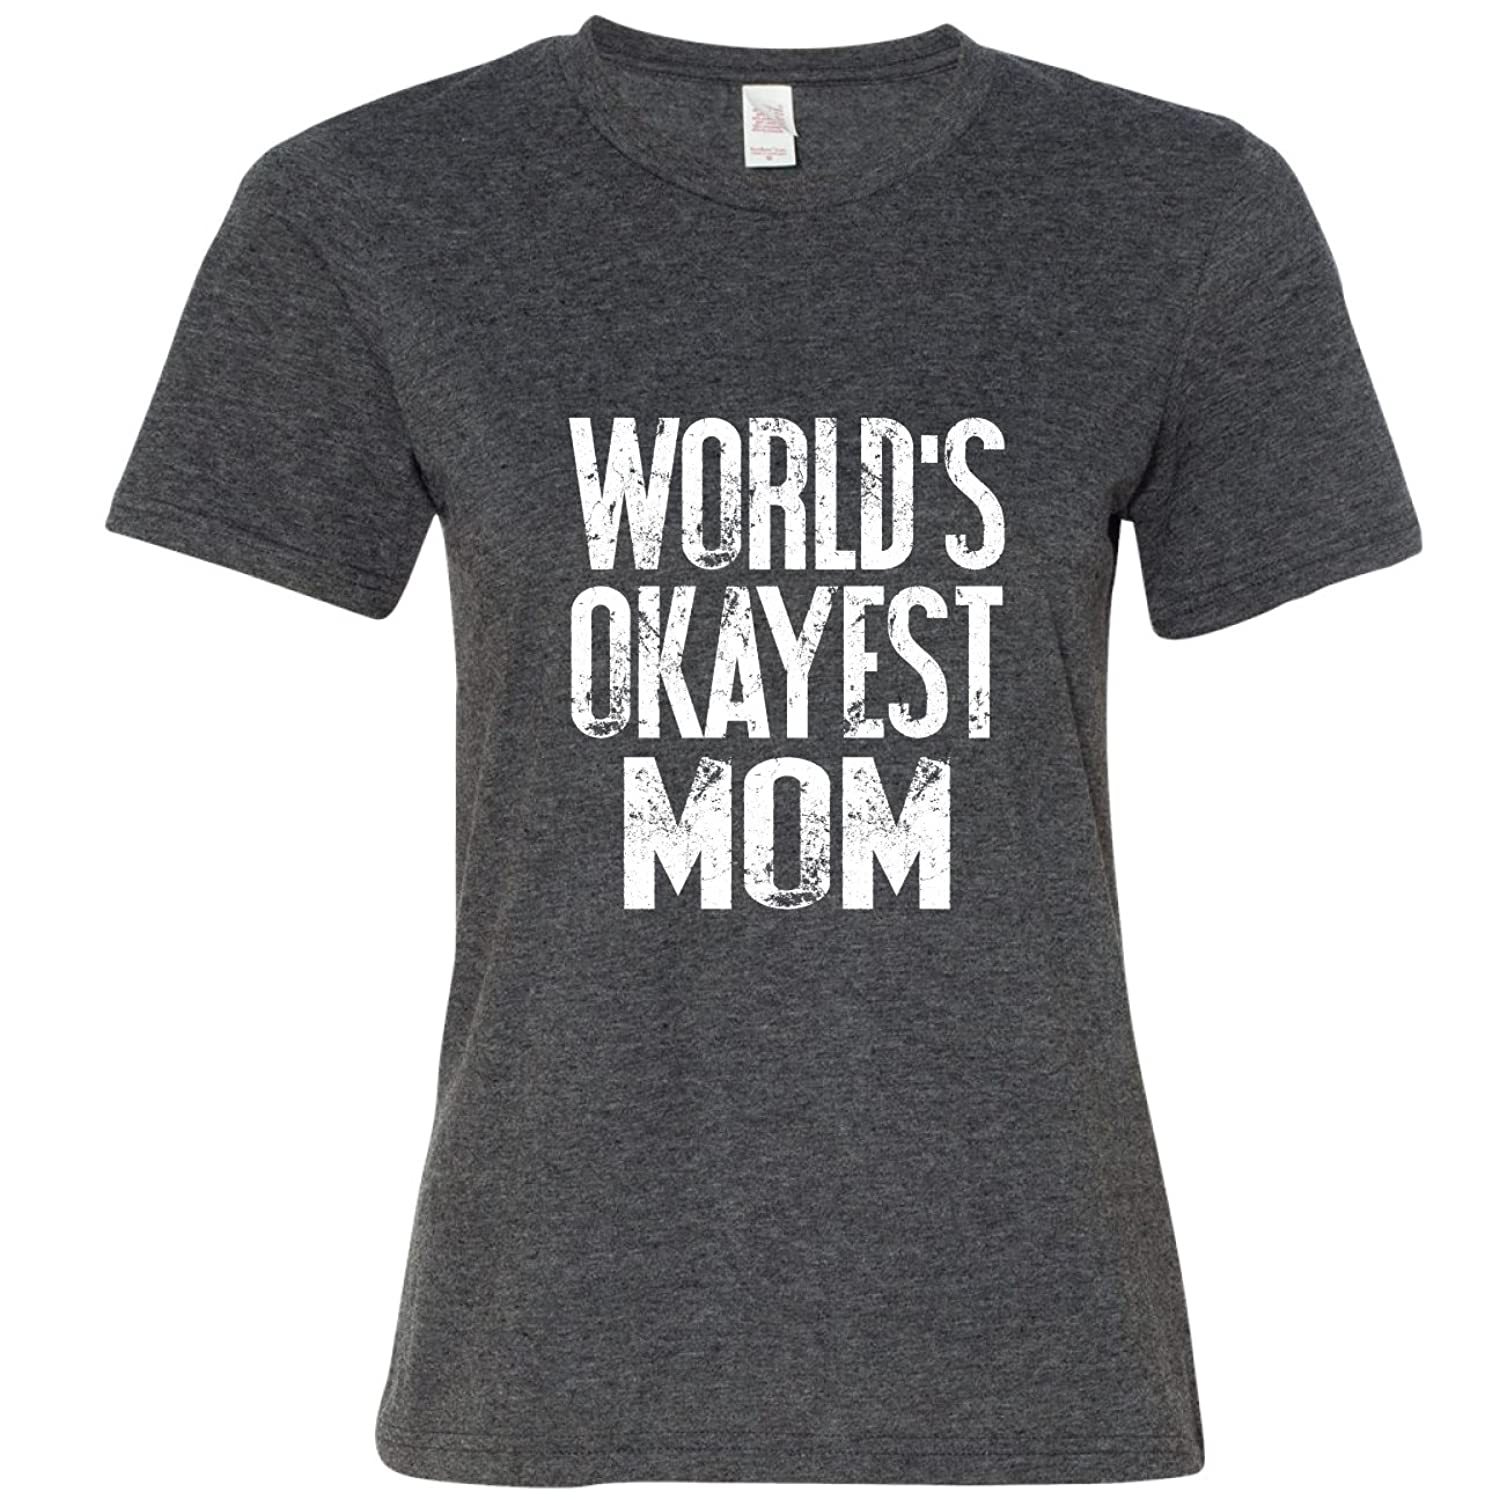 1d6b2a77 durable service Funny Gift for Mom, Sister, Dad, Brother, World's Okayest  Shirts